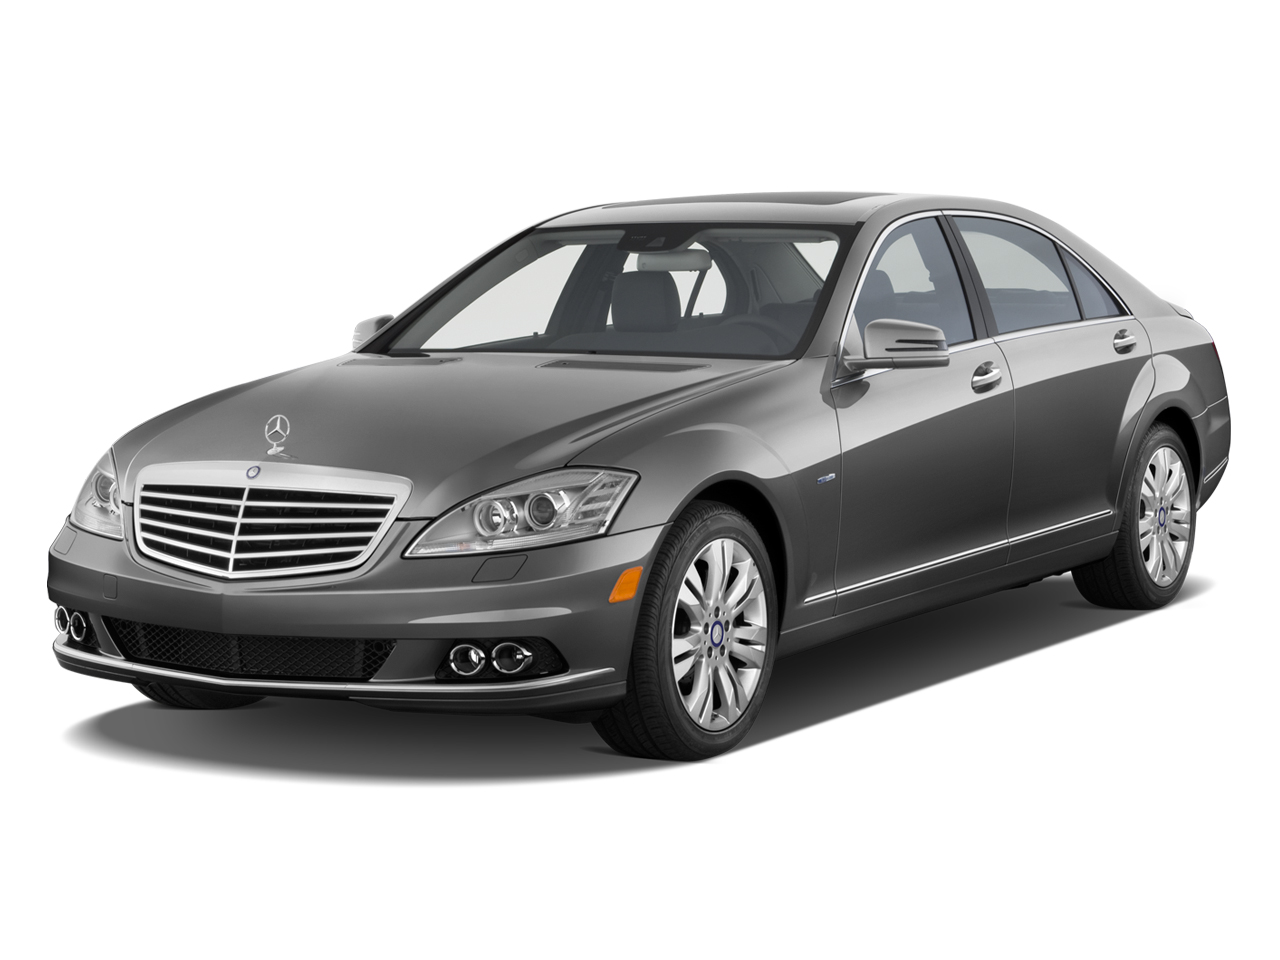 2010 mercedes benz s class review ratings specs prices for Mercedes benz used cars prices